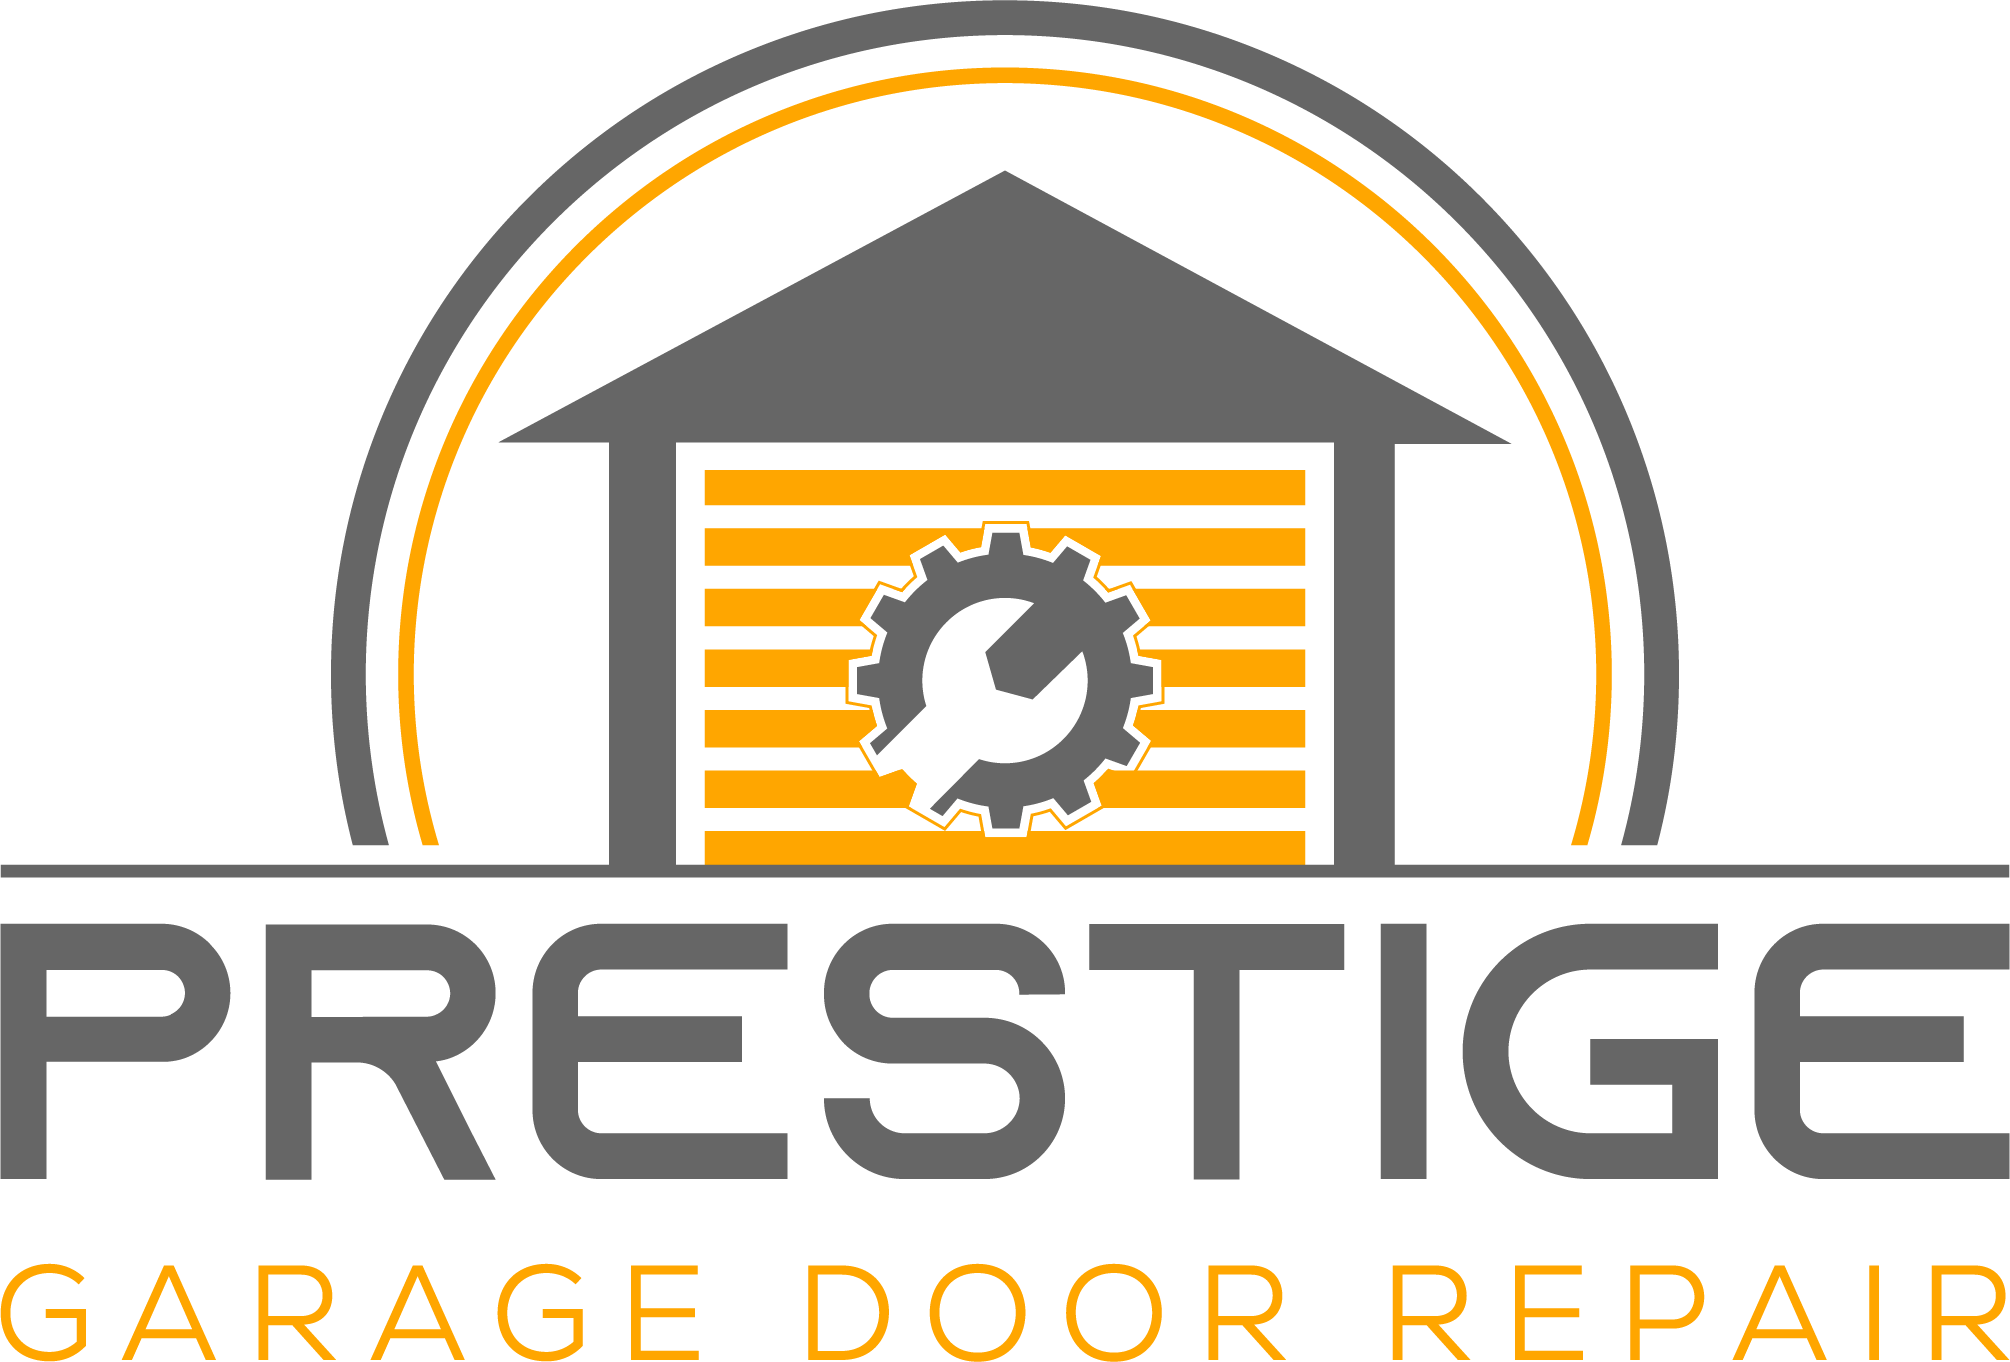 Prestige Garage Door Repair Company